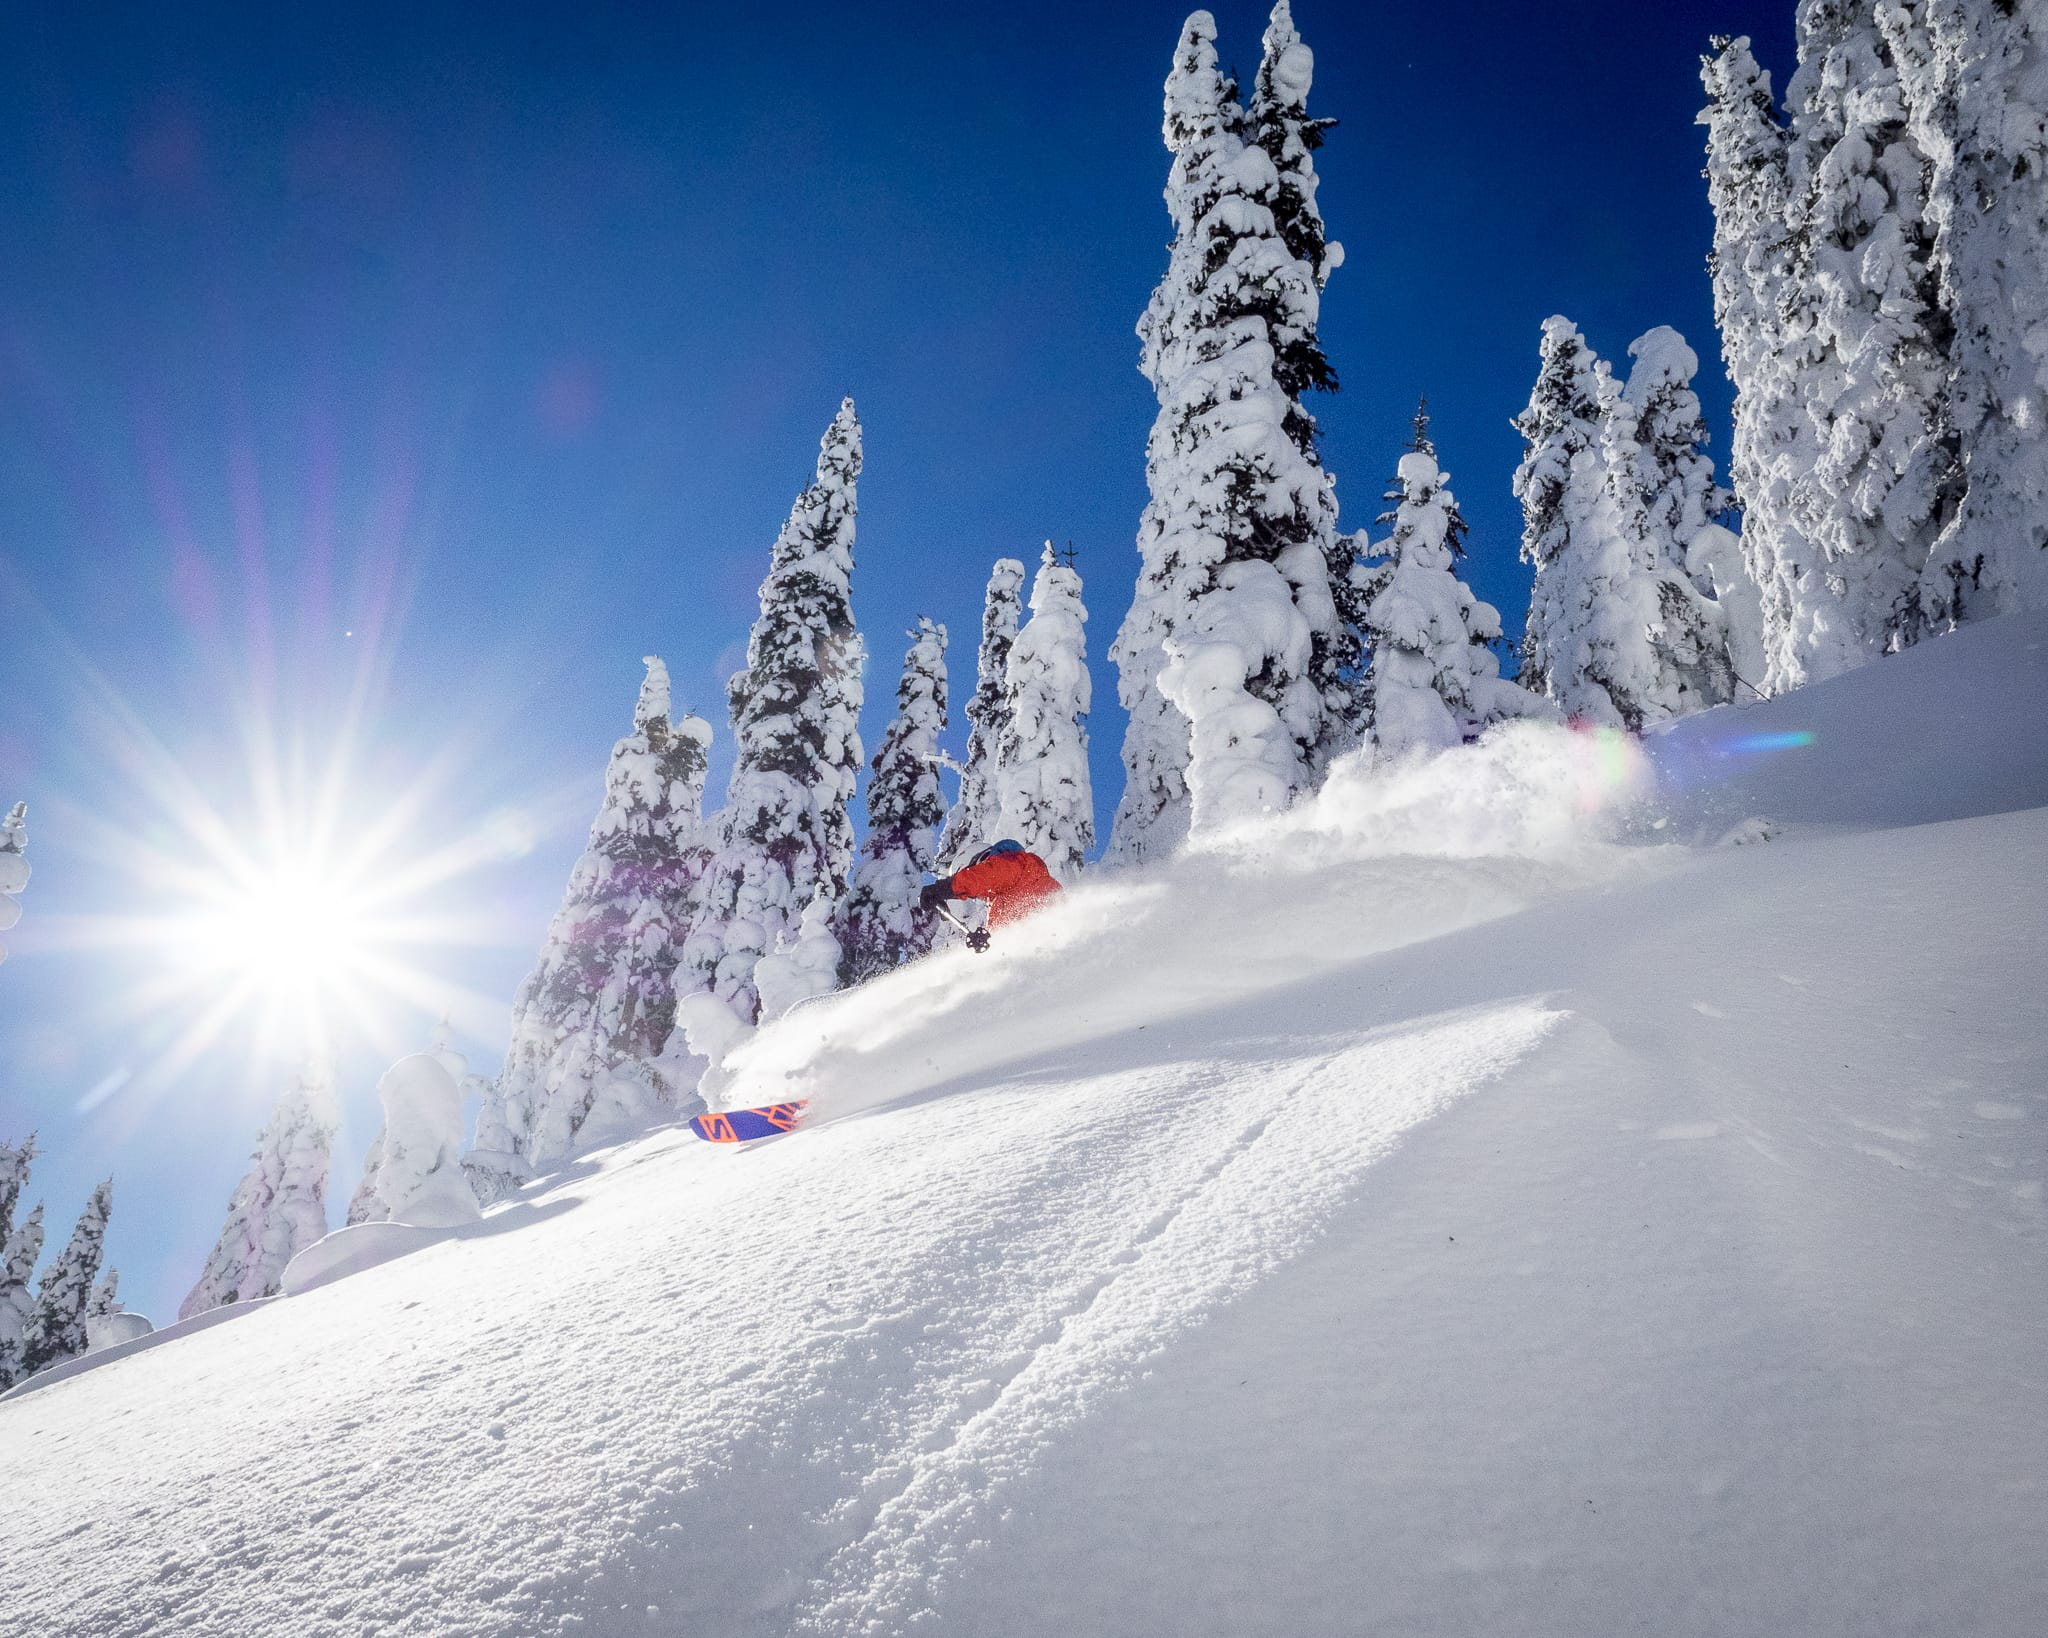 Skiing at Red Mountain Resort for Destination BC